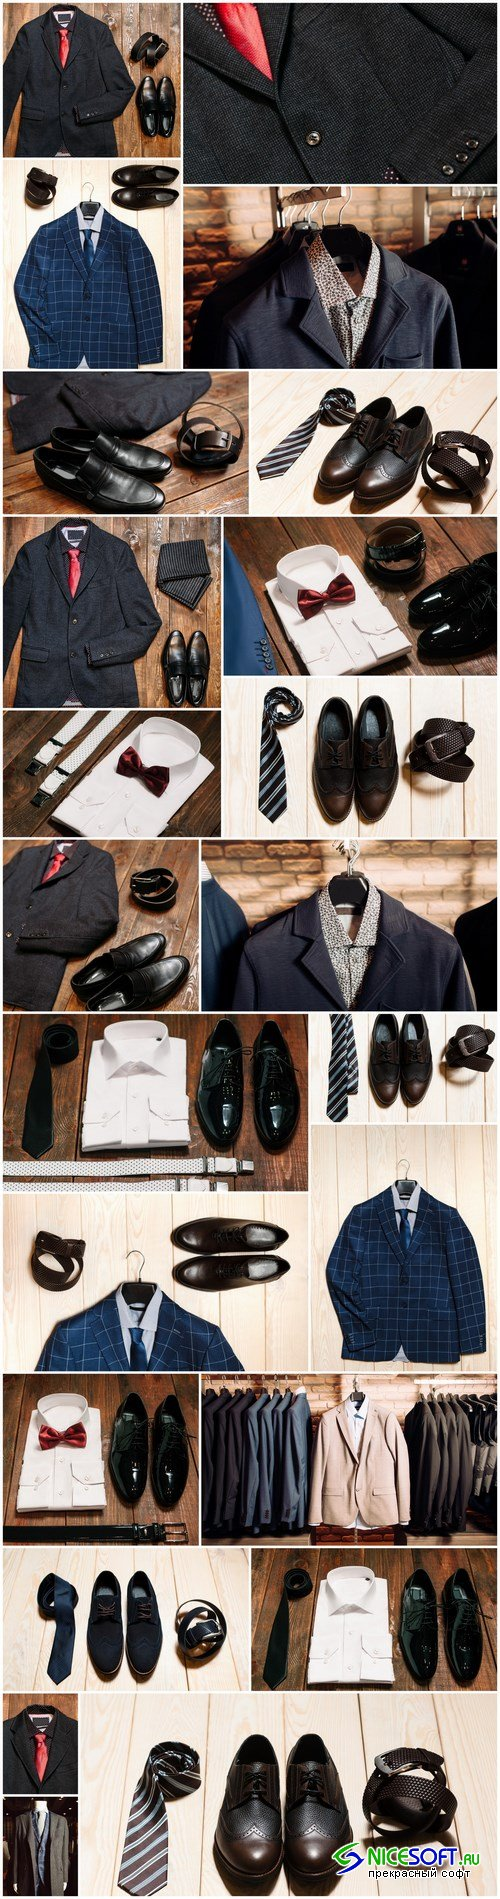 Men's Clothing and Accessories 2 - 23xUHQ JPEG Photo Stock